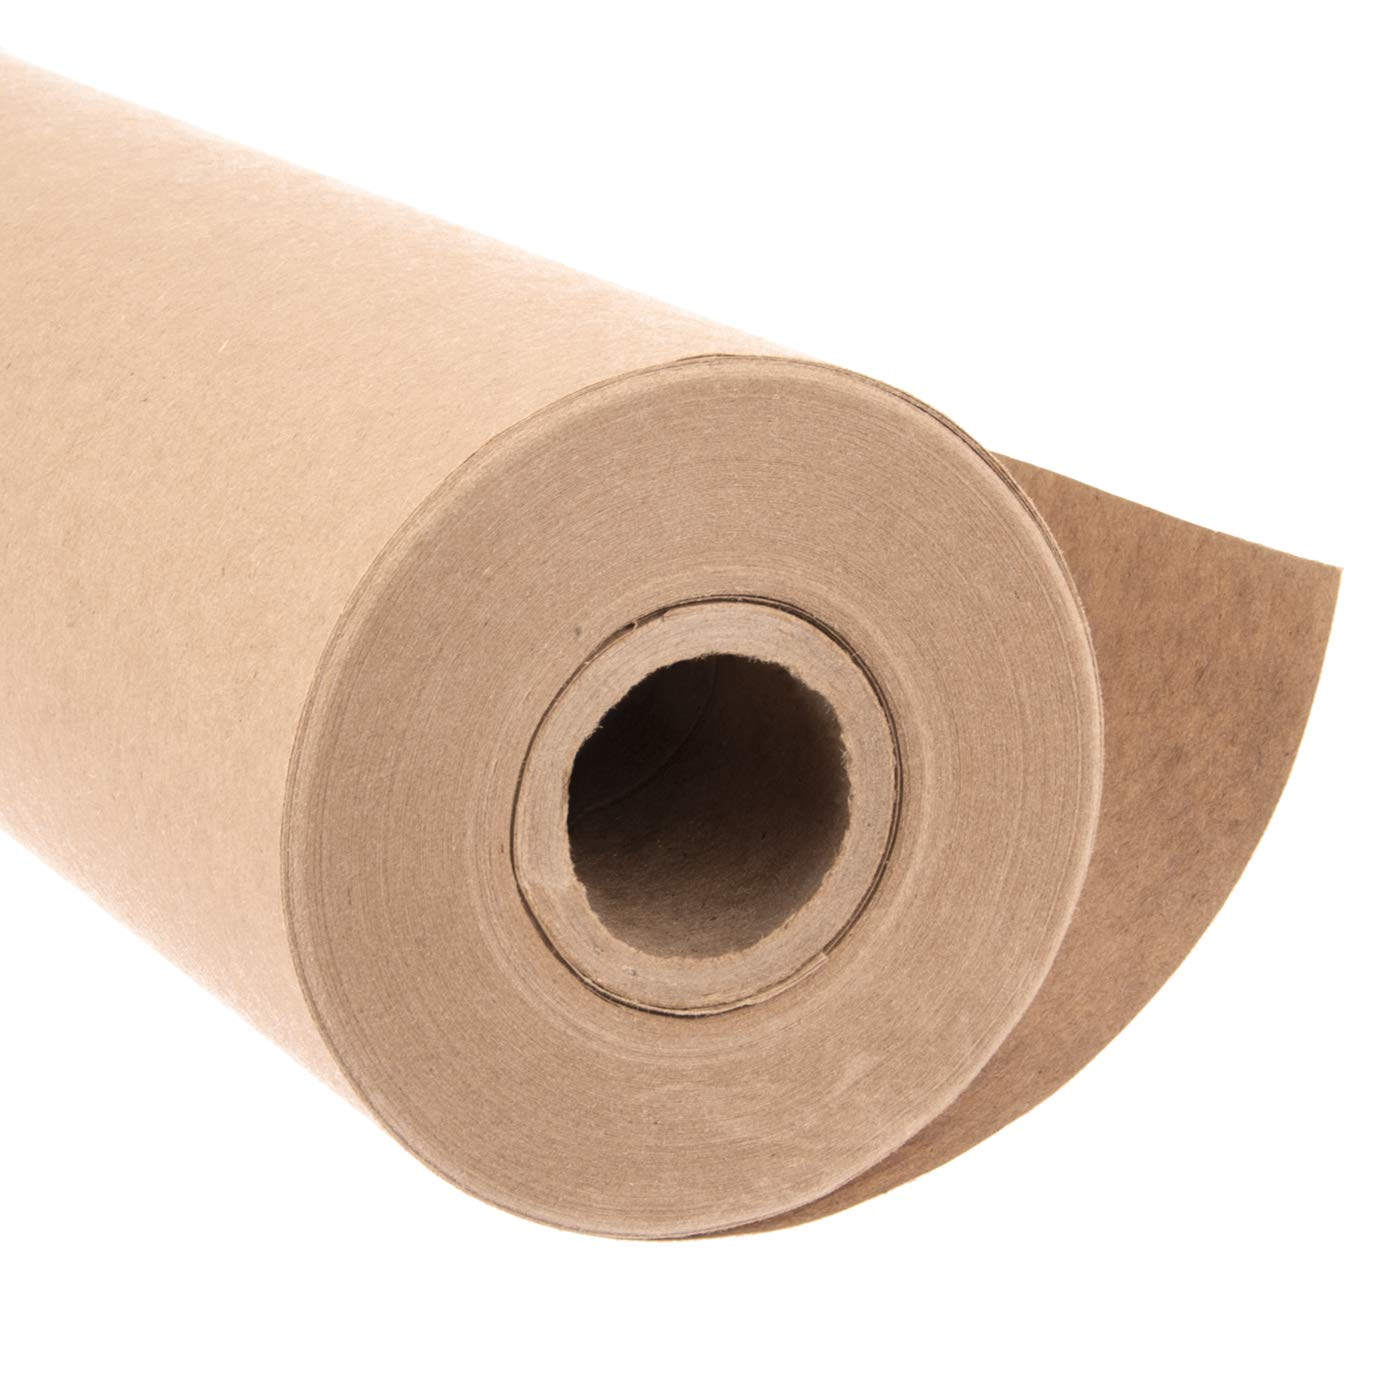 Eco Kraft Wrapping Paper Roll (Jumbo Roll) | Biodegradable Recycled Material | Made in the USA | Multi-use: Natural Wrapping Paper, Table Cover/Runner, Moving, Packing & Shipping | 30'' x 1200'' (100ft)